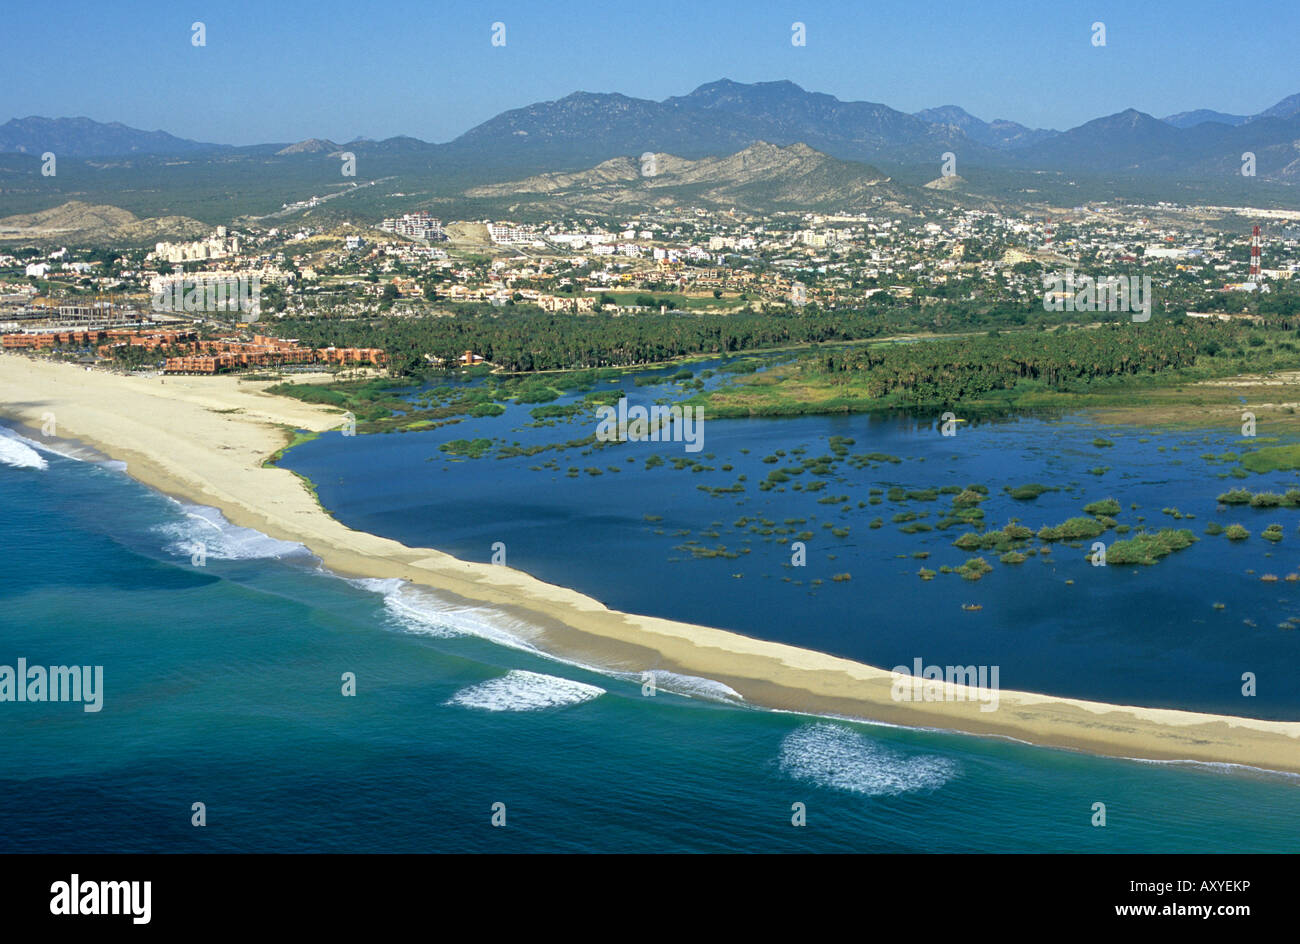 The town of san jos del cabo and the adjacent san jos estuary at stock photo royalty free - San jose del cabo ...